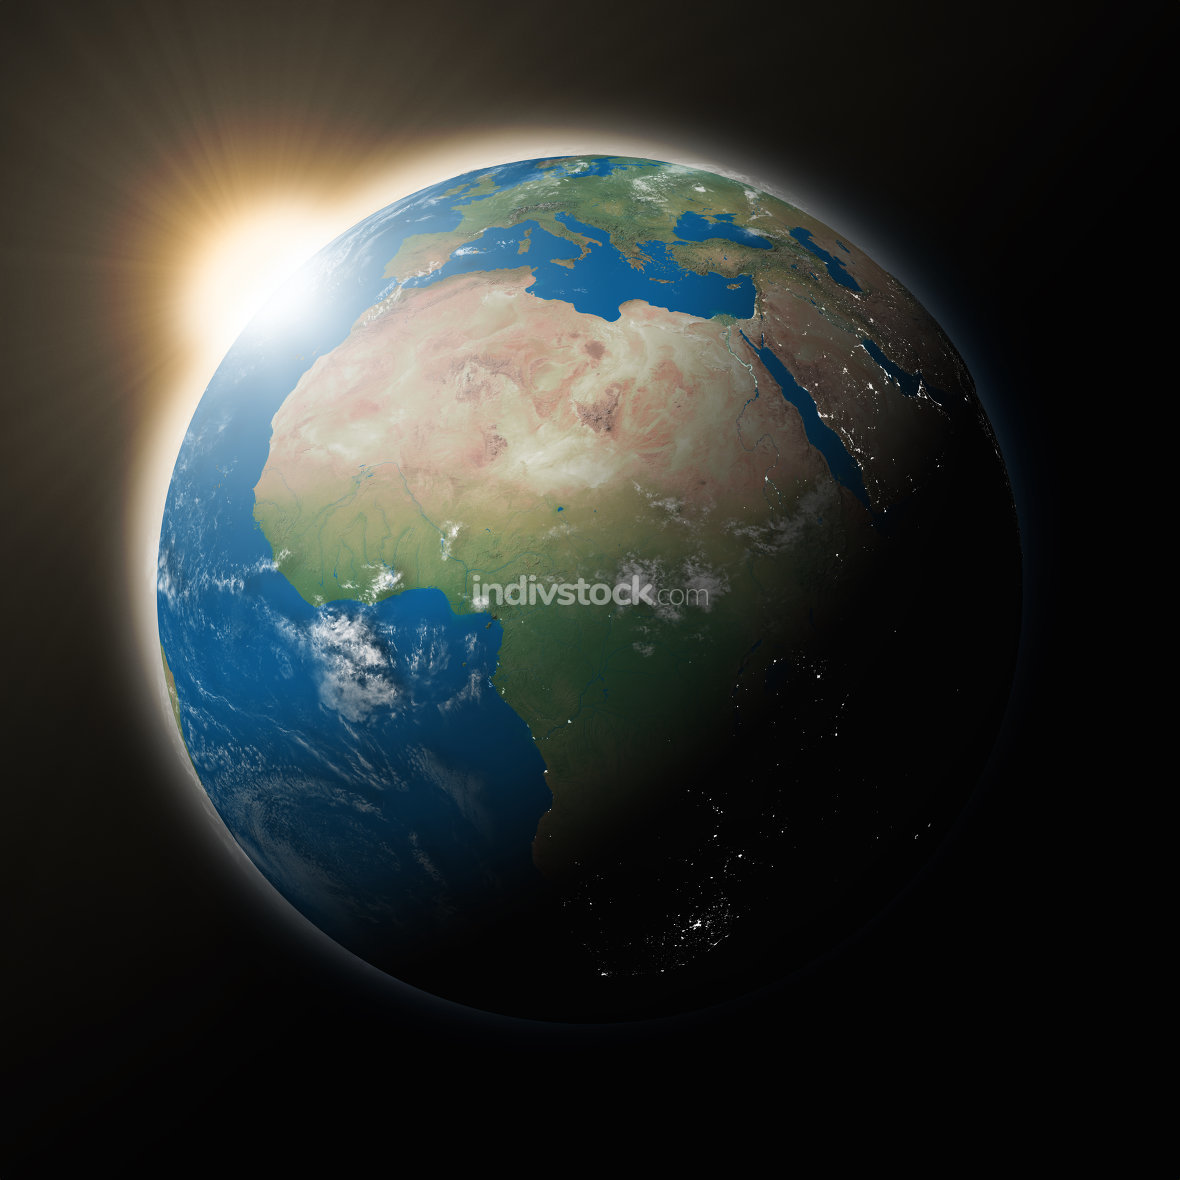 Sun over Africa on planet Earth. Elements of this image furnished by NASA.